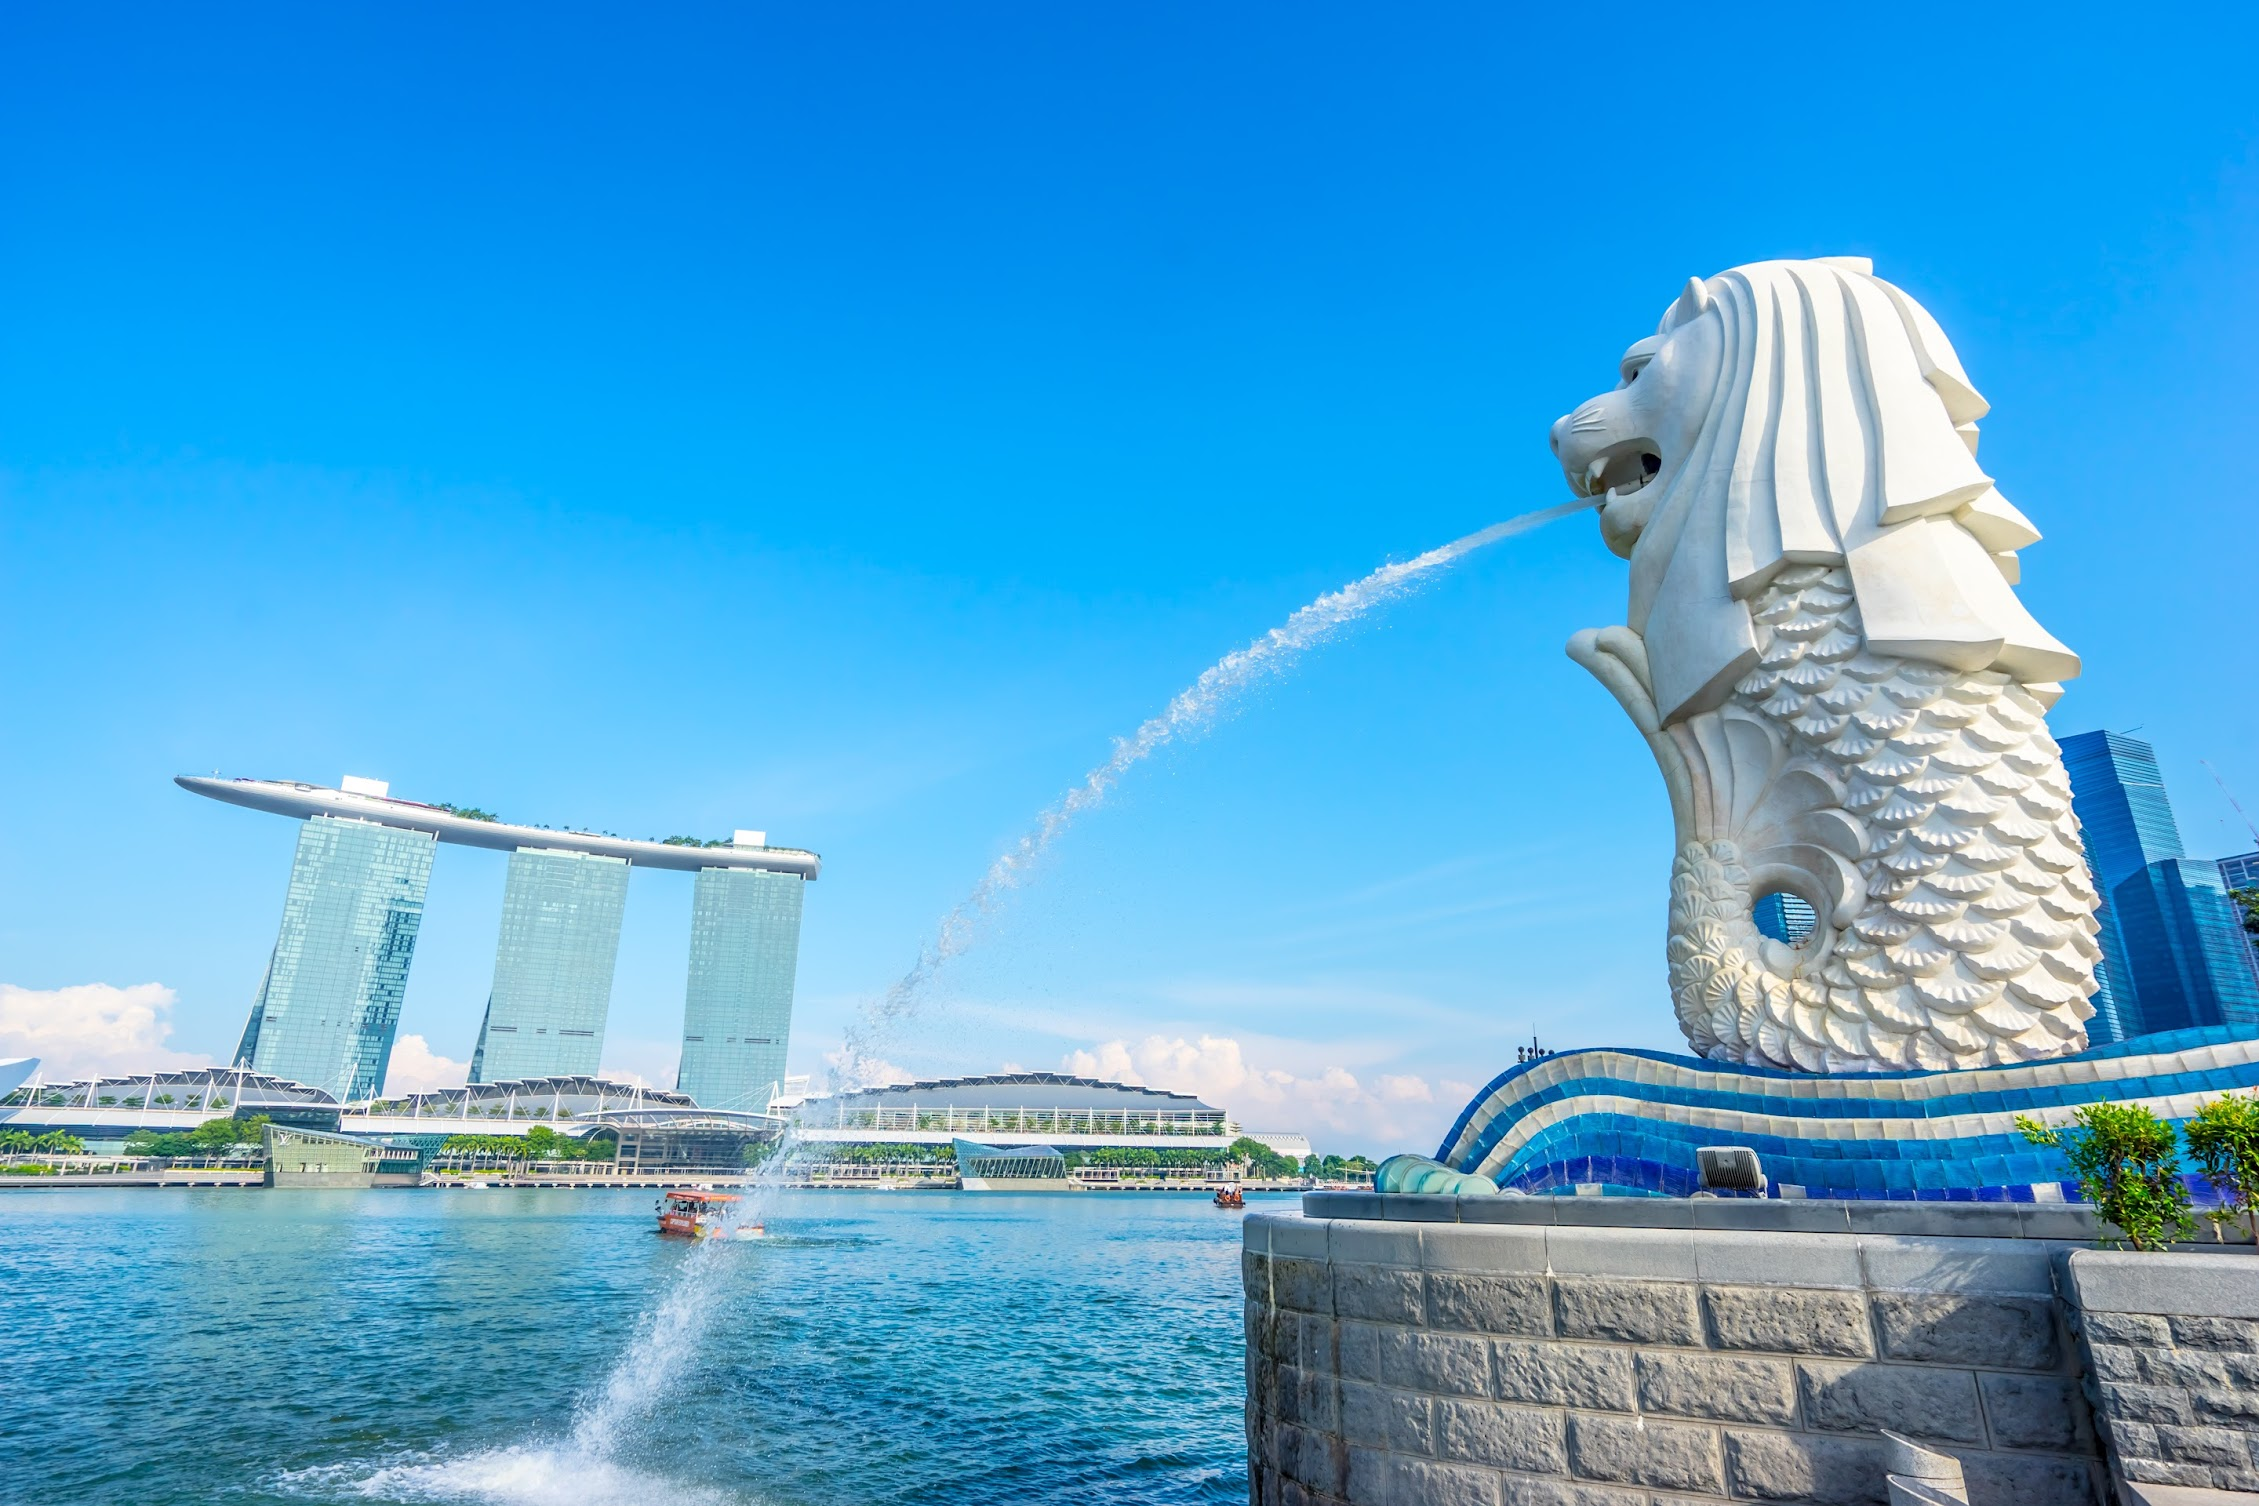 Shows, Events & Attractions in Singapore - Marina Bay Sands